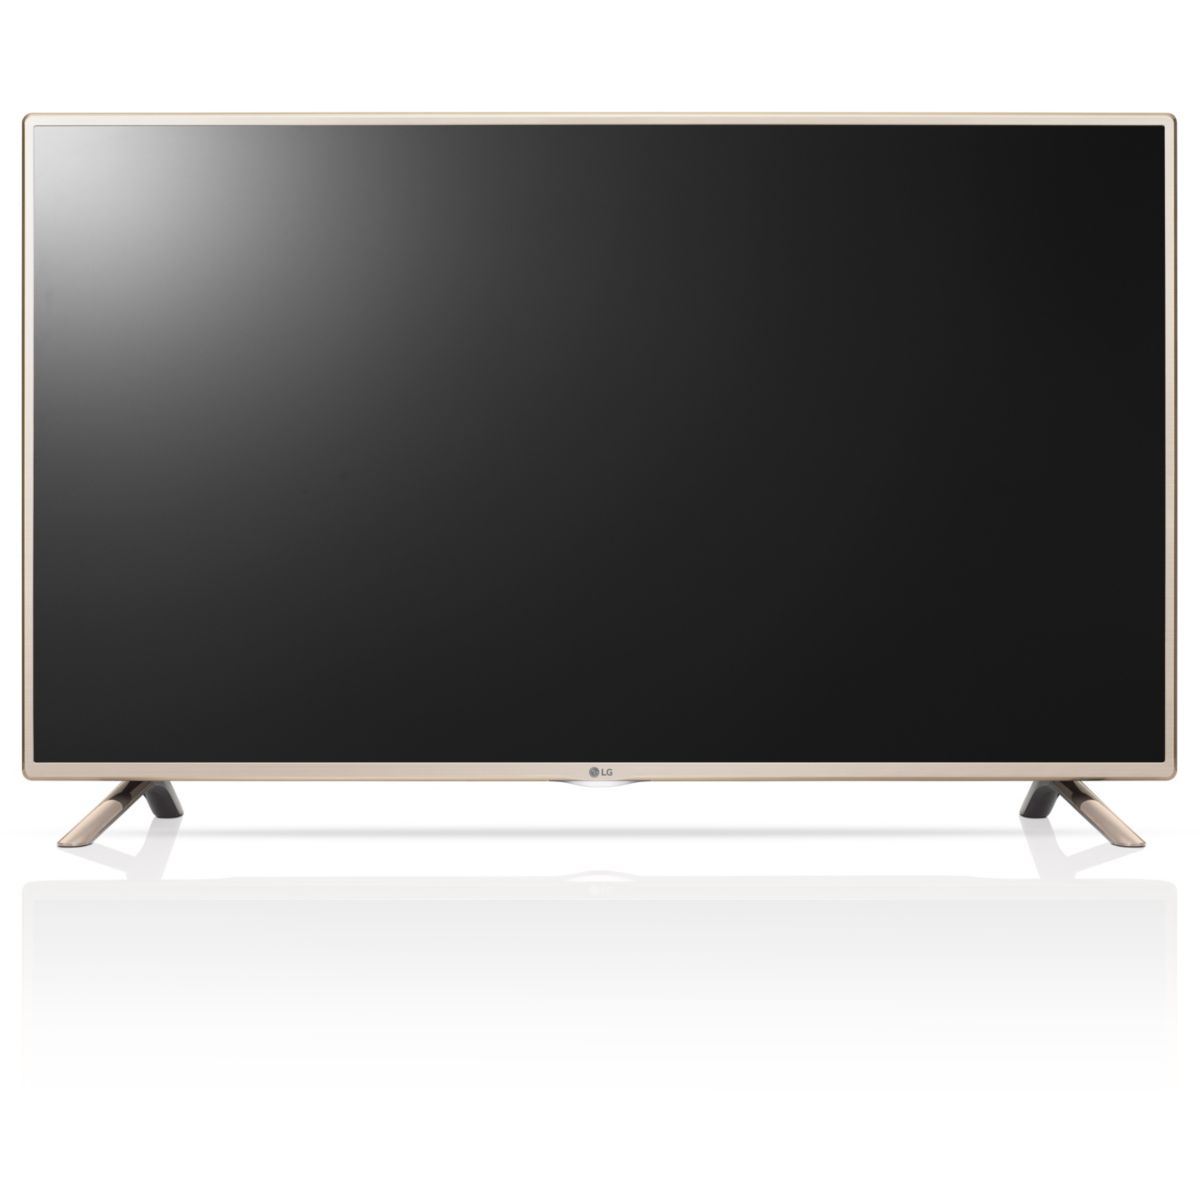 lg 32lf5800 t l viseur led 81 cm smart tv comparer. Black Bedroom Furniture Sets. Home Design Ideas